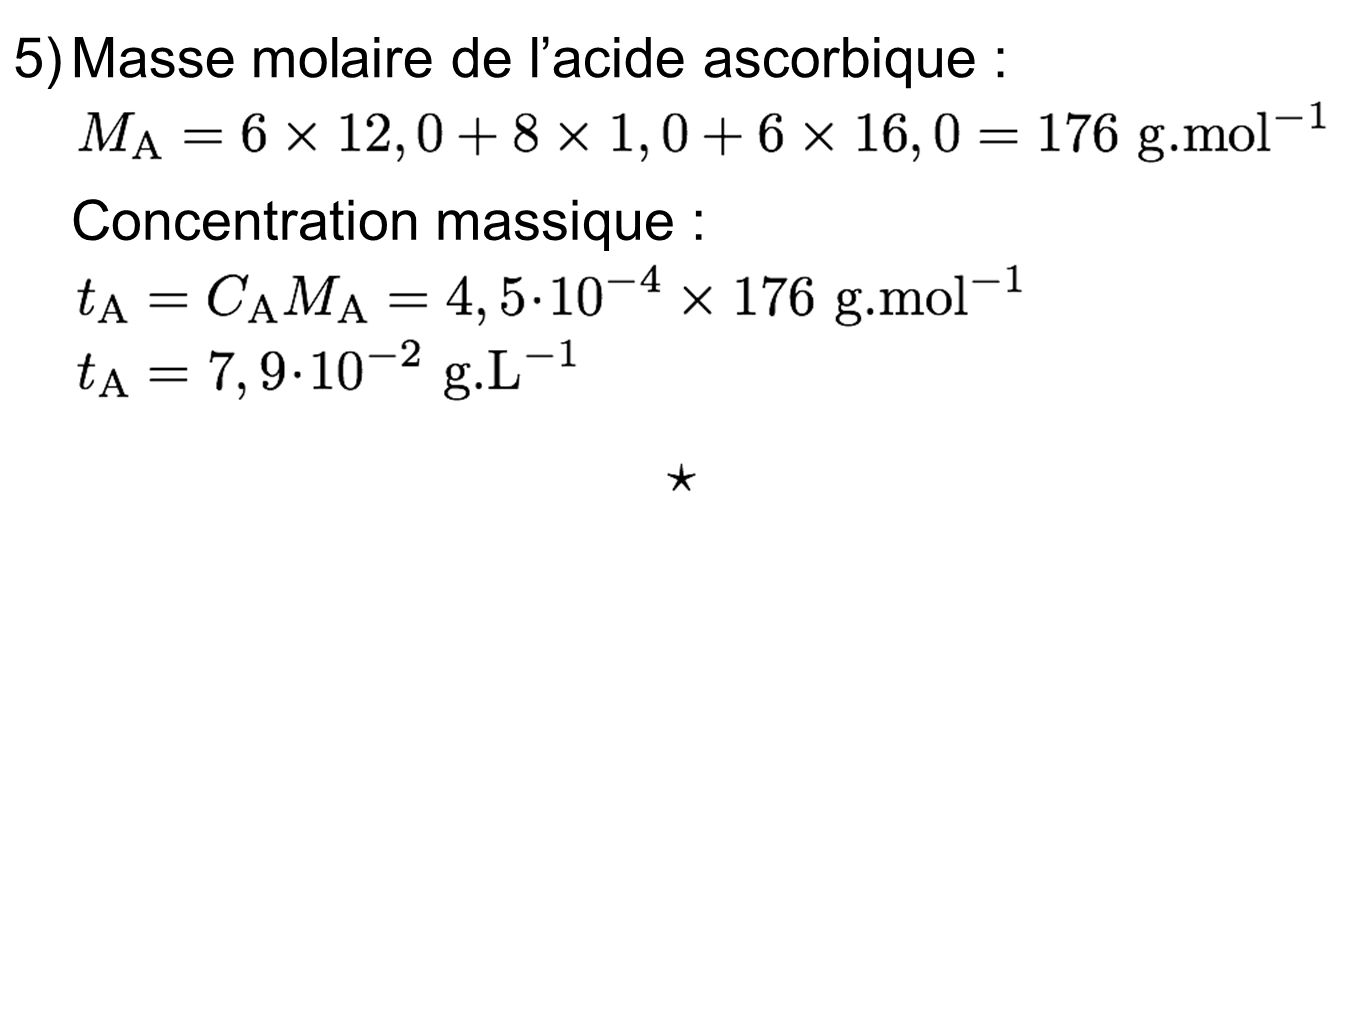 5)Masse molaire de lacide ascorbique : Concentration massique :